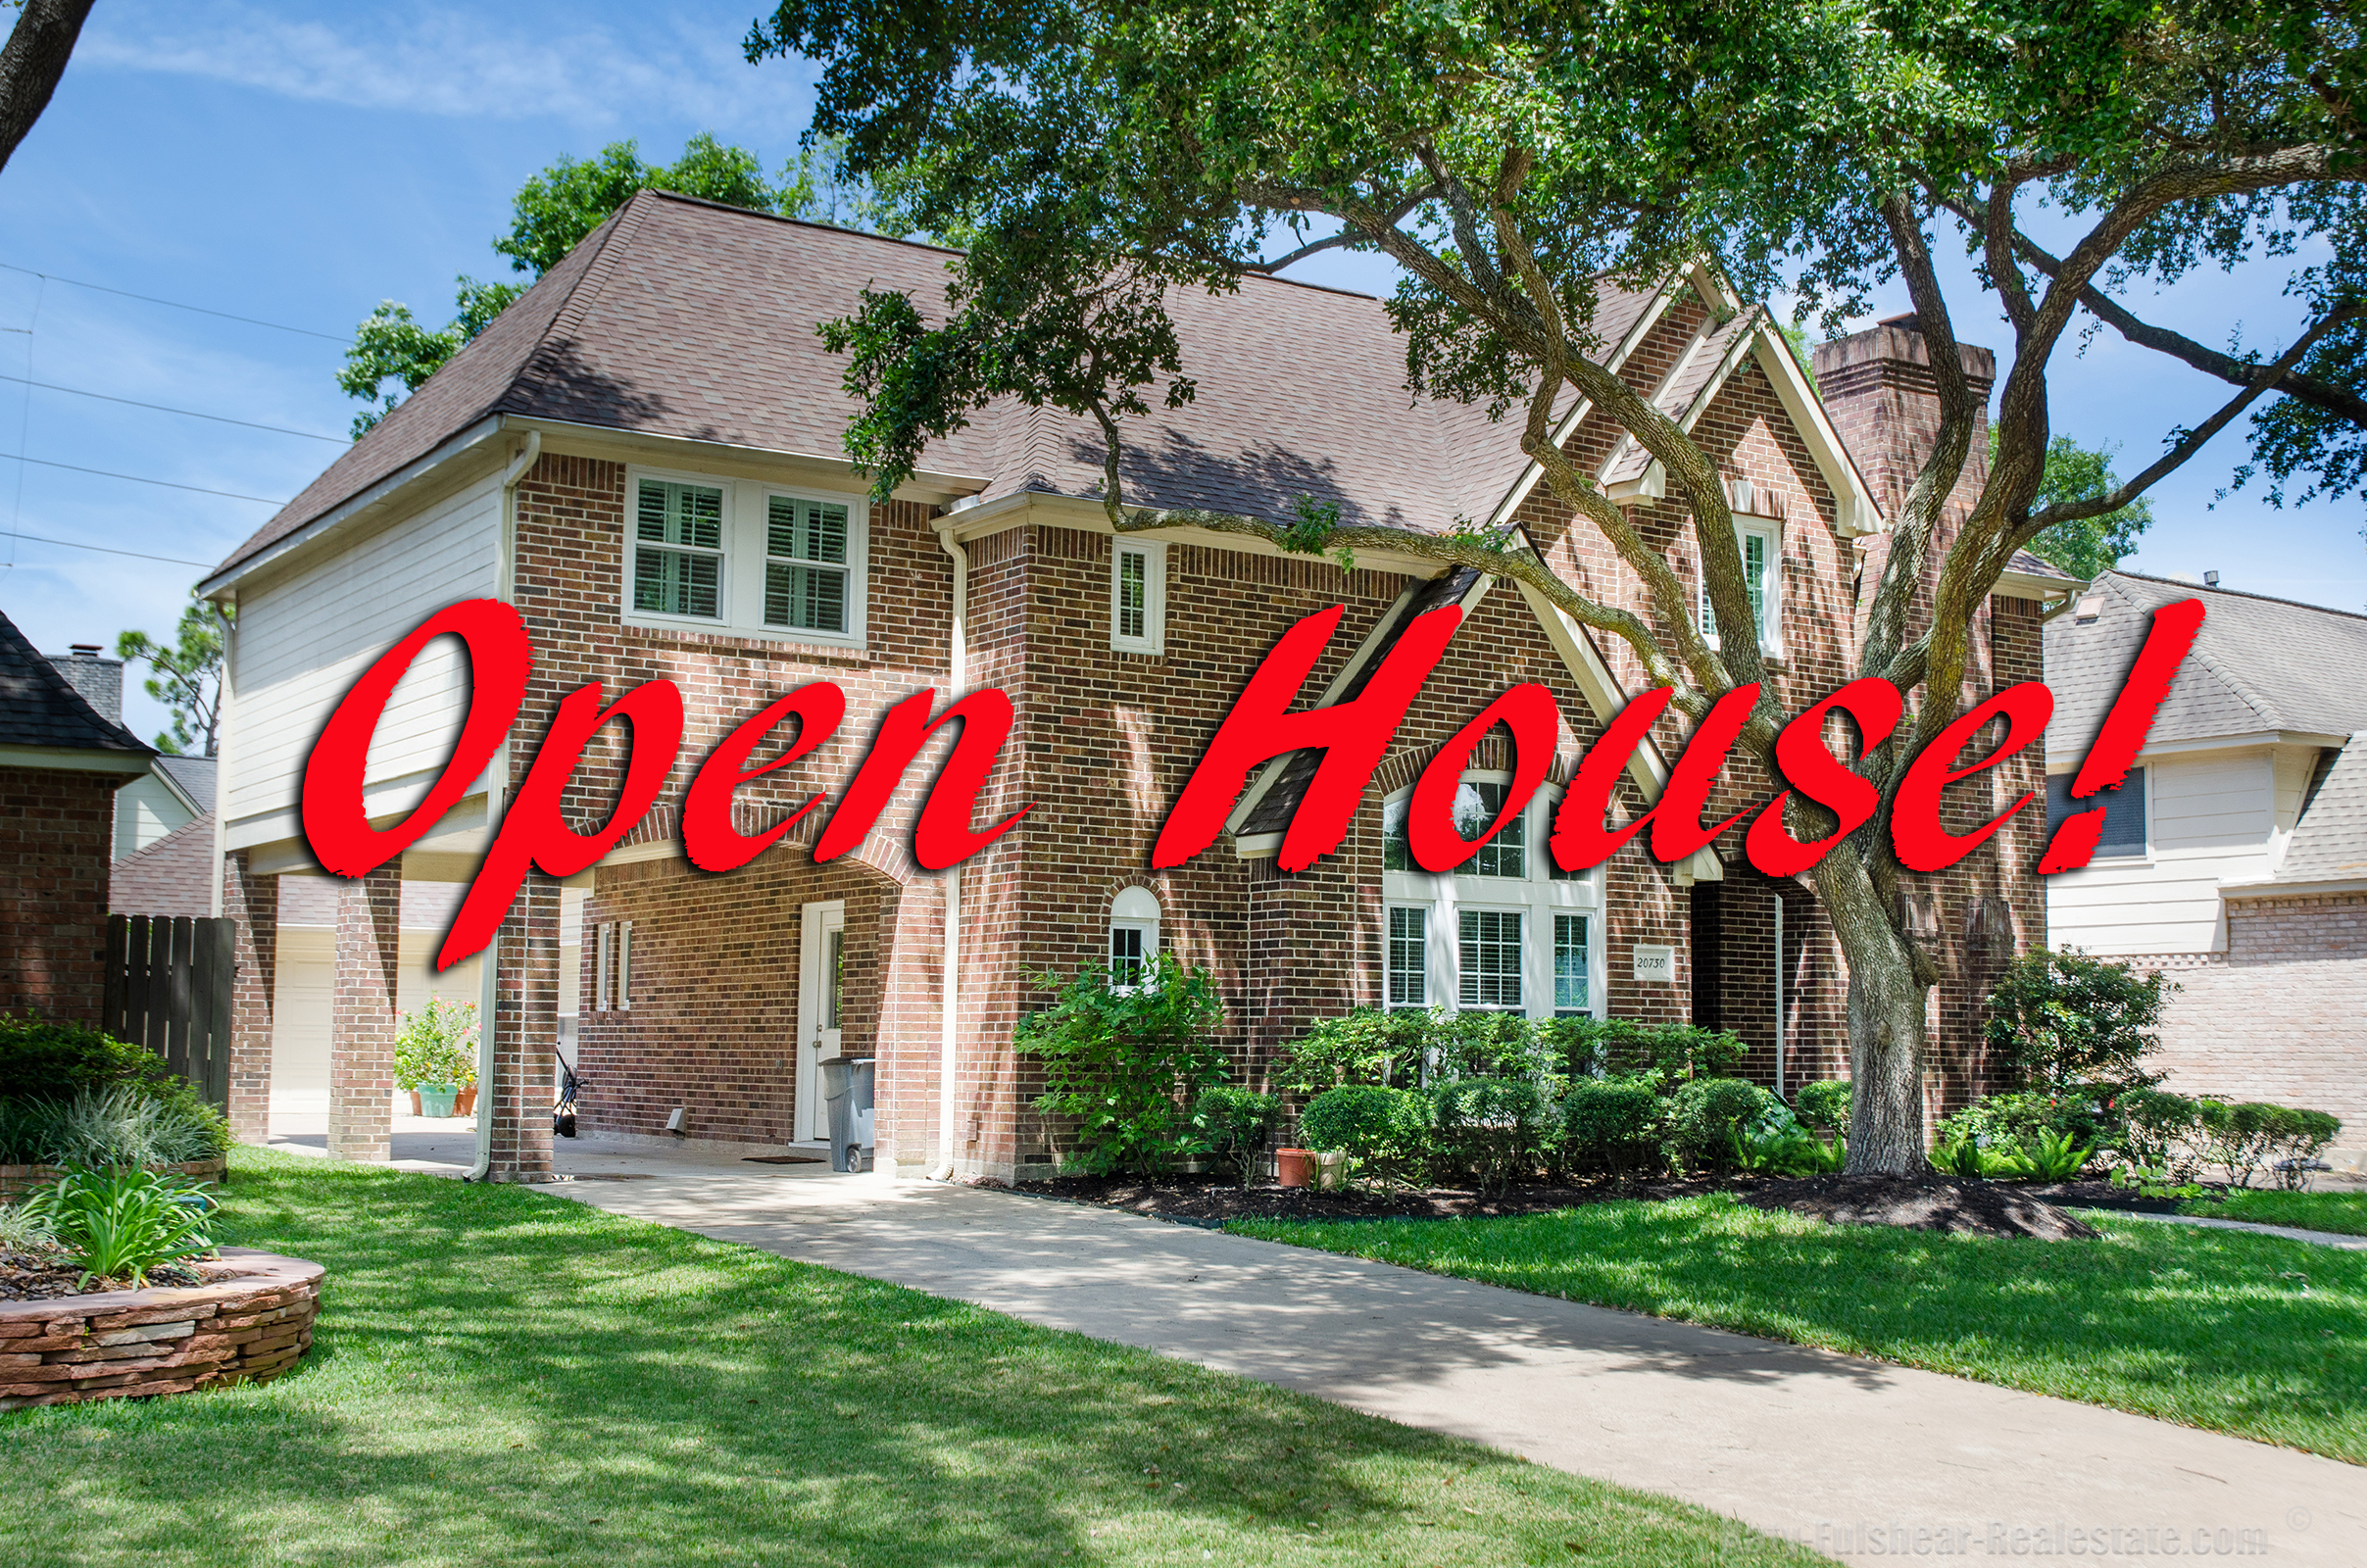 Katy Home Open House This Sunday The 28th 1 4pm 20730 Prince Creek Katy